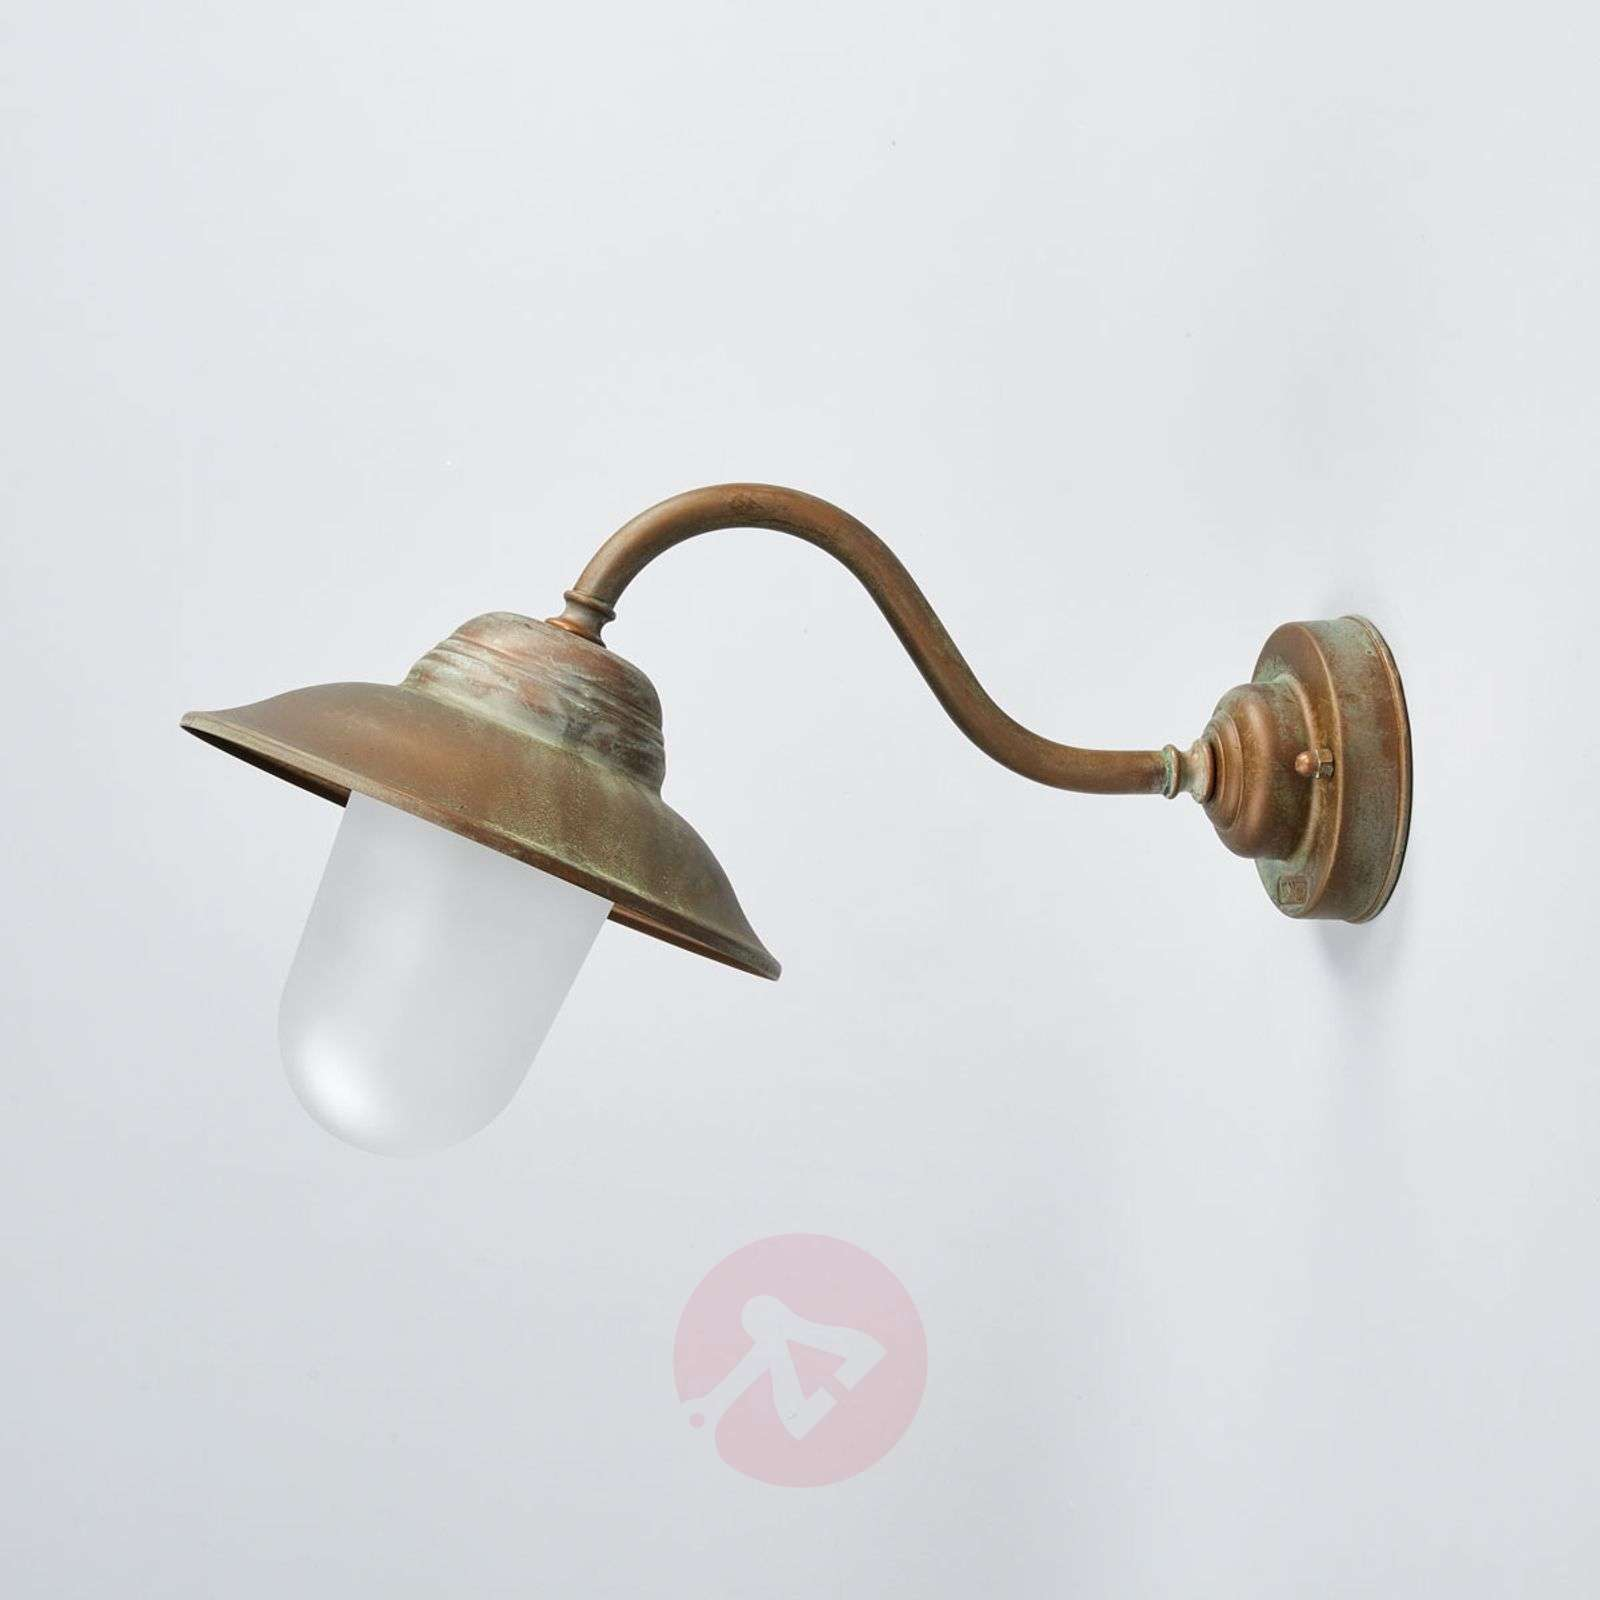 Curved outdoor wall light Birga-6515248-01